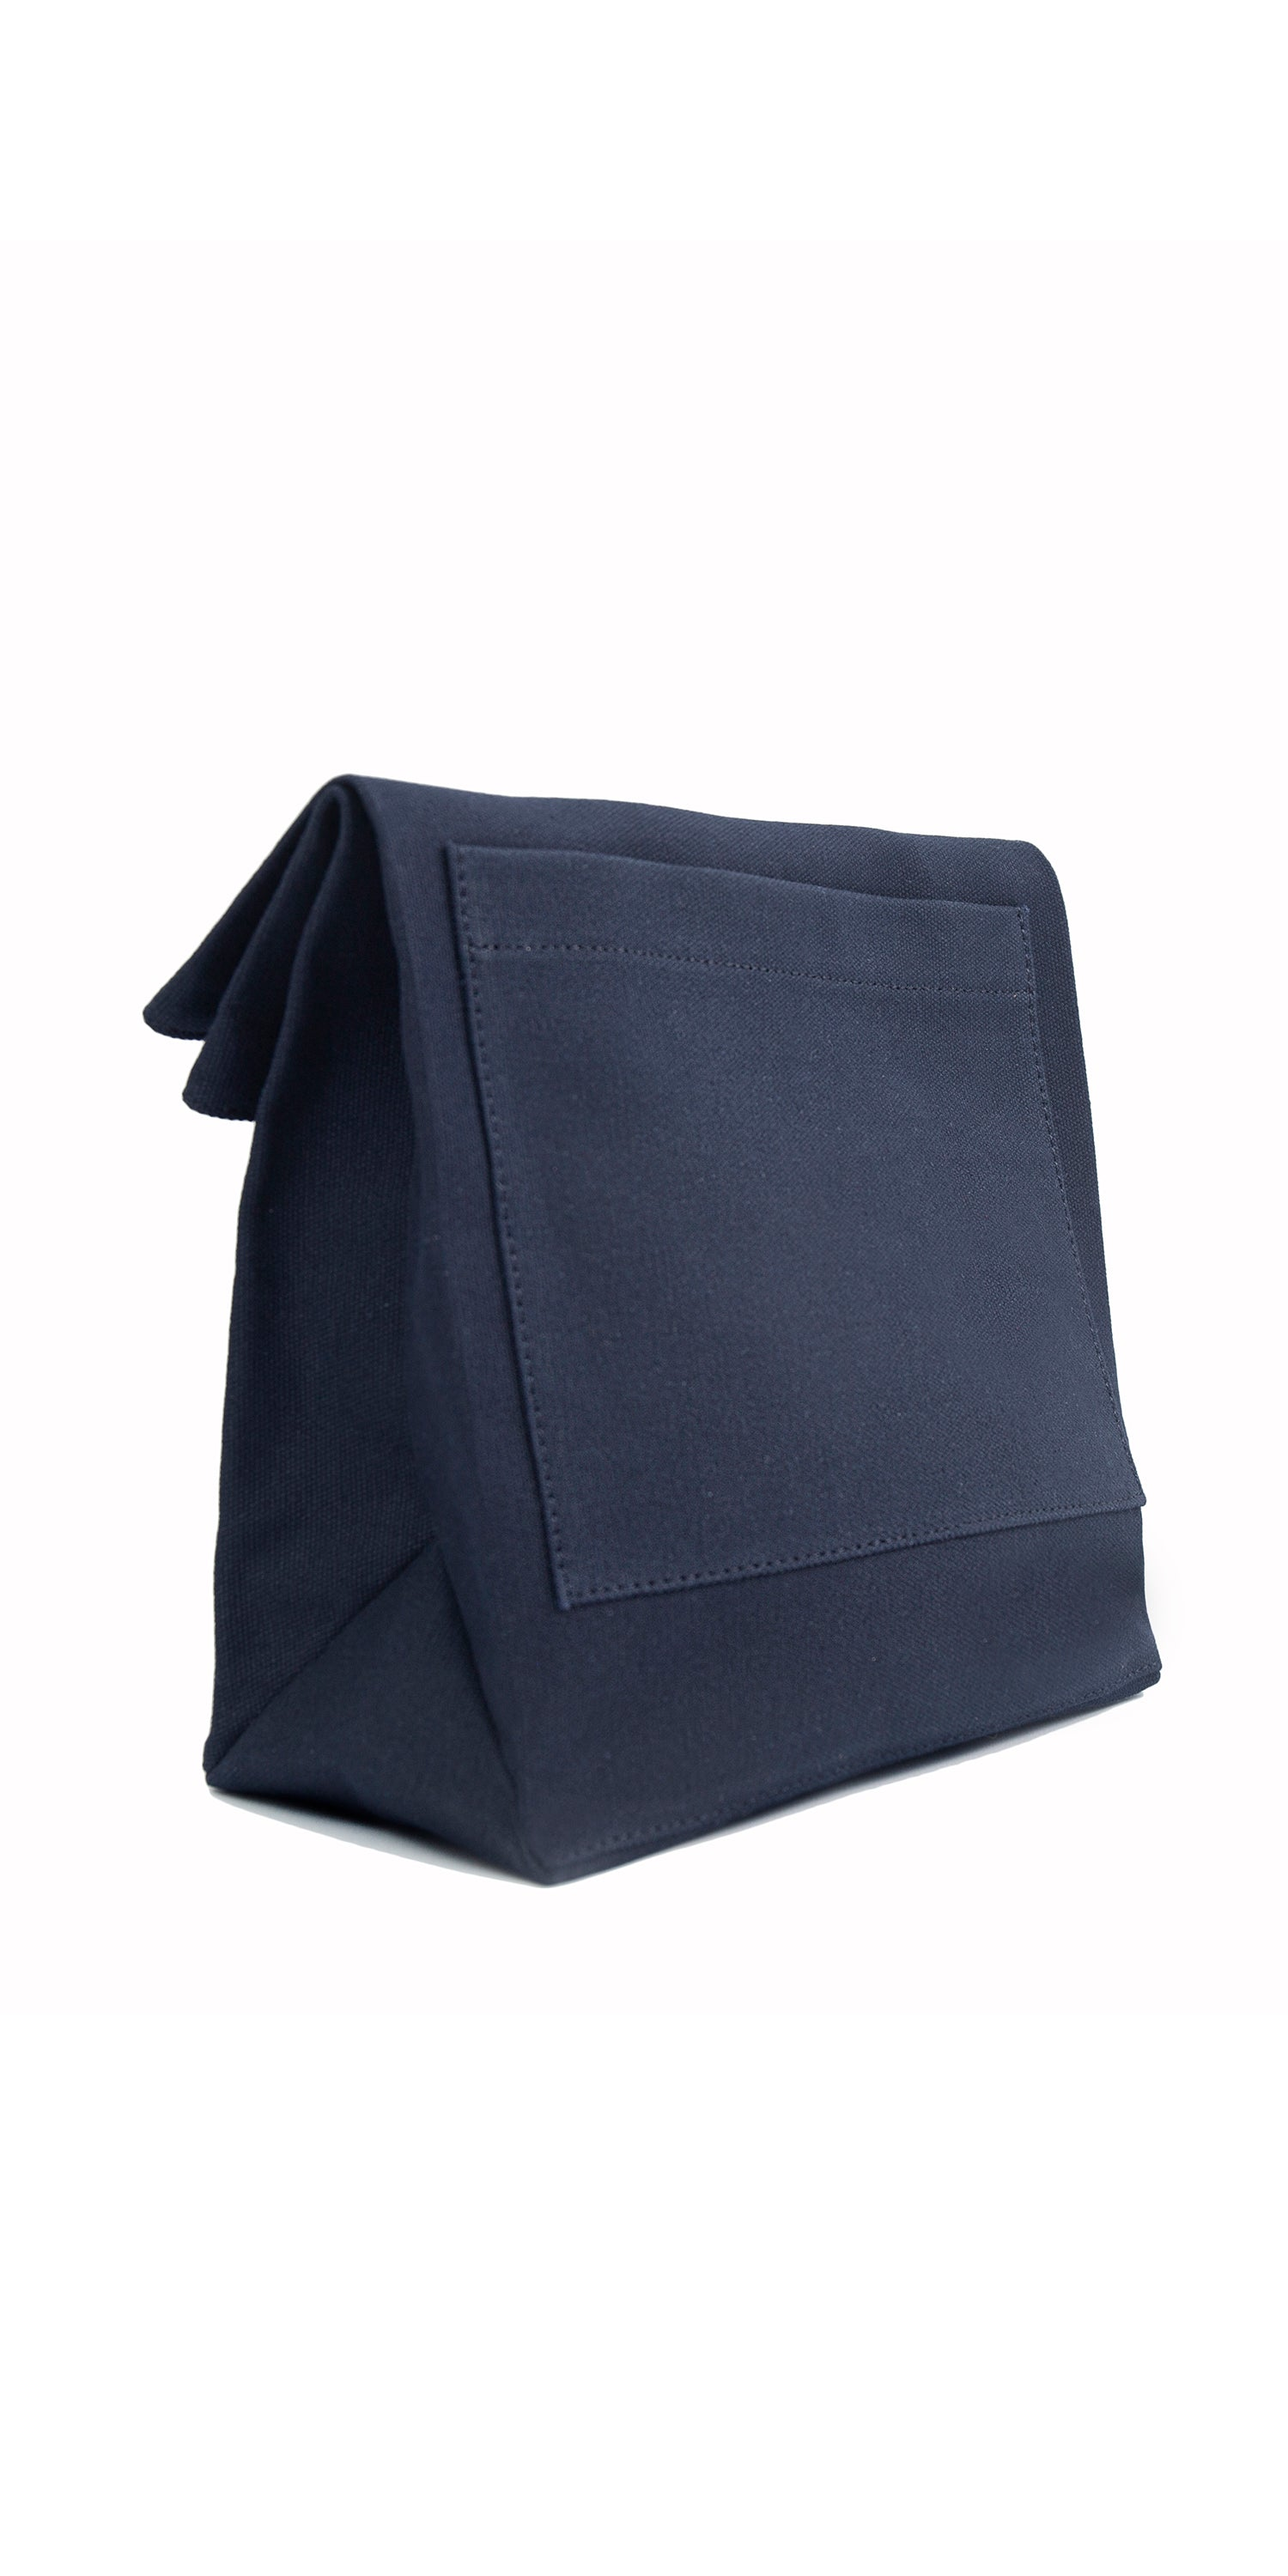 Moraltive Lunch Bag Navy Blue